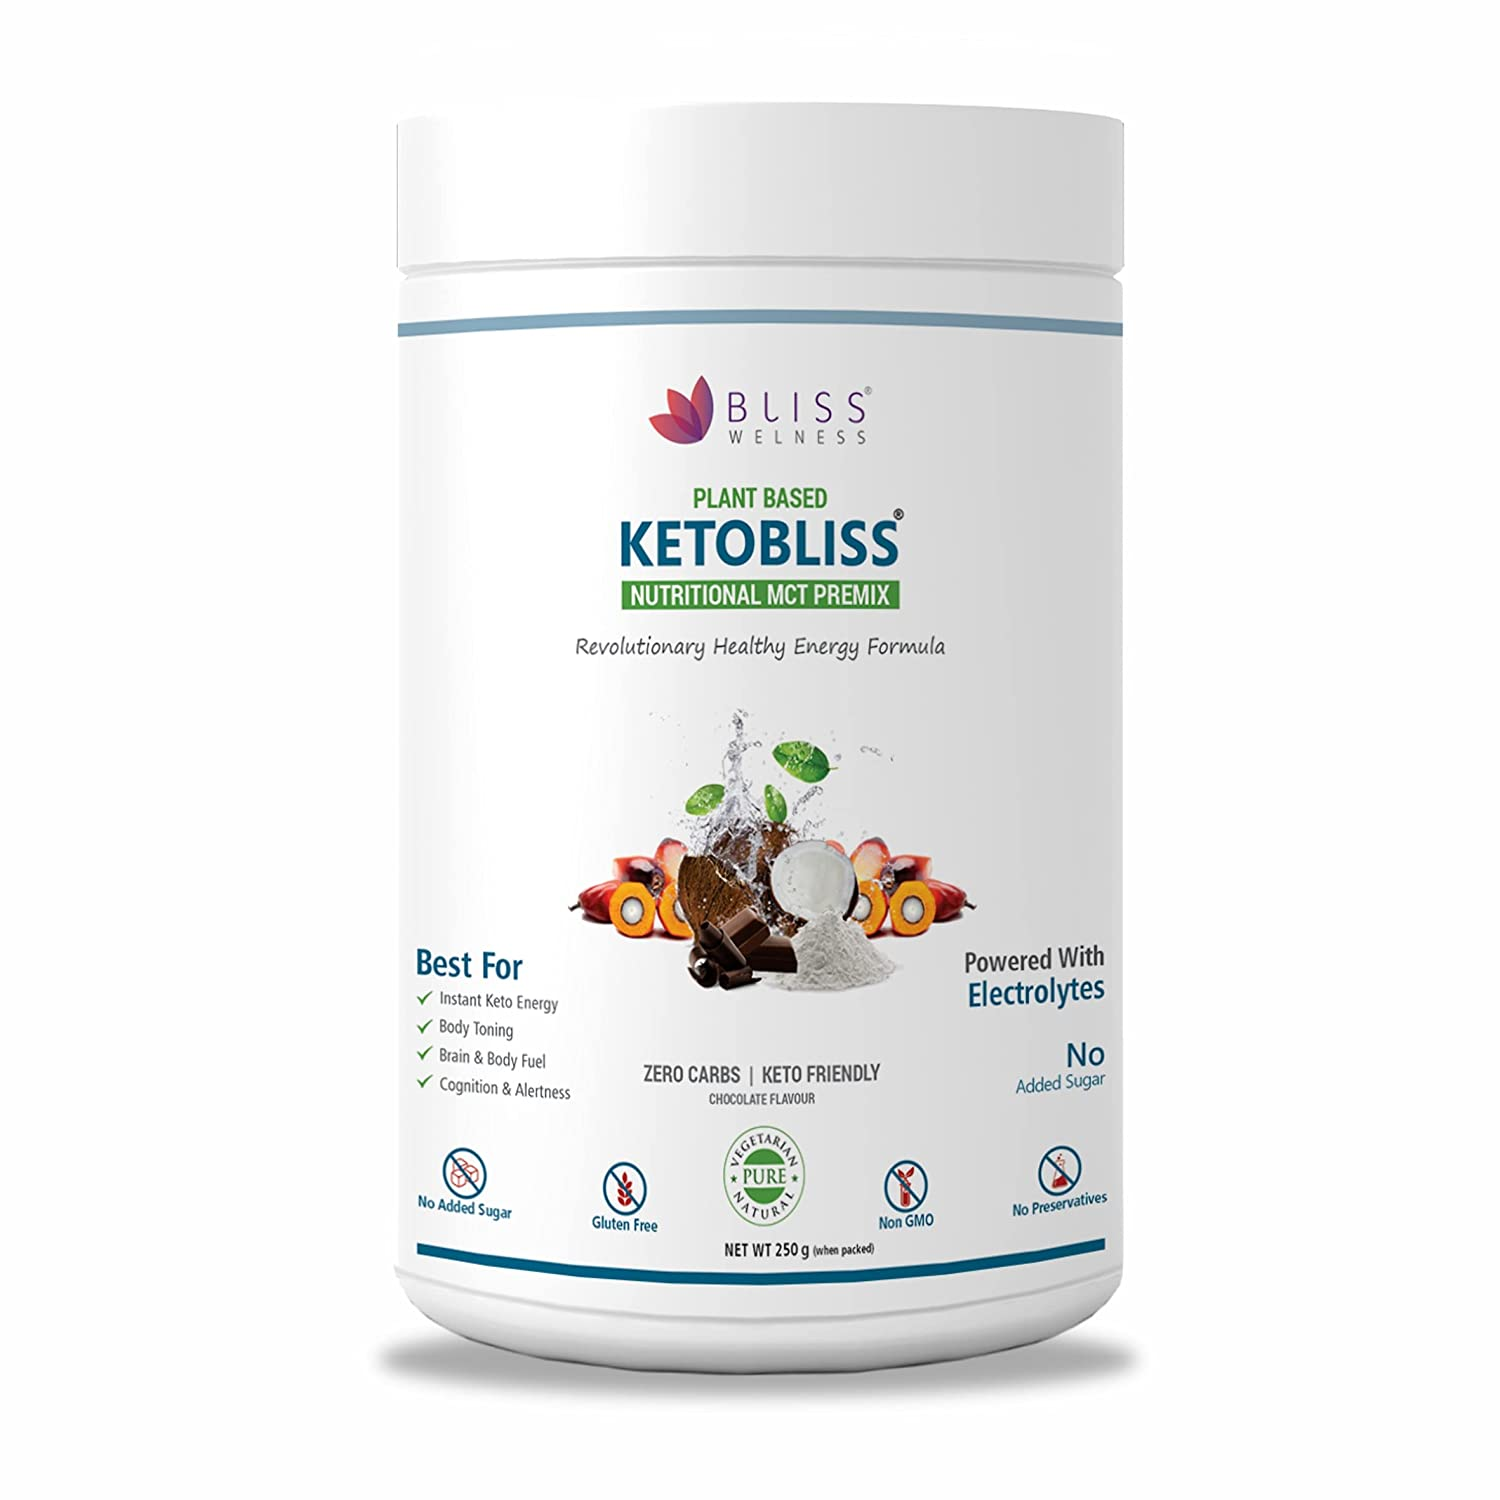 Bliss Welness Keto MCT Oil Powder Zero Carb Clean Energy for Ketosis Weight Management - Chocolate